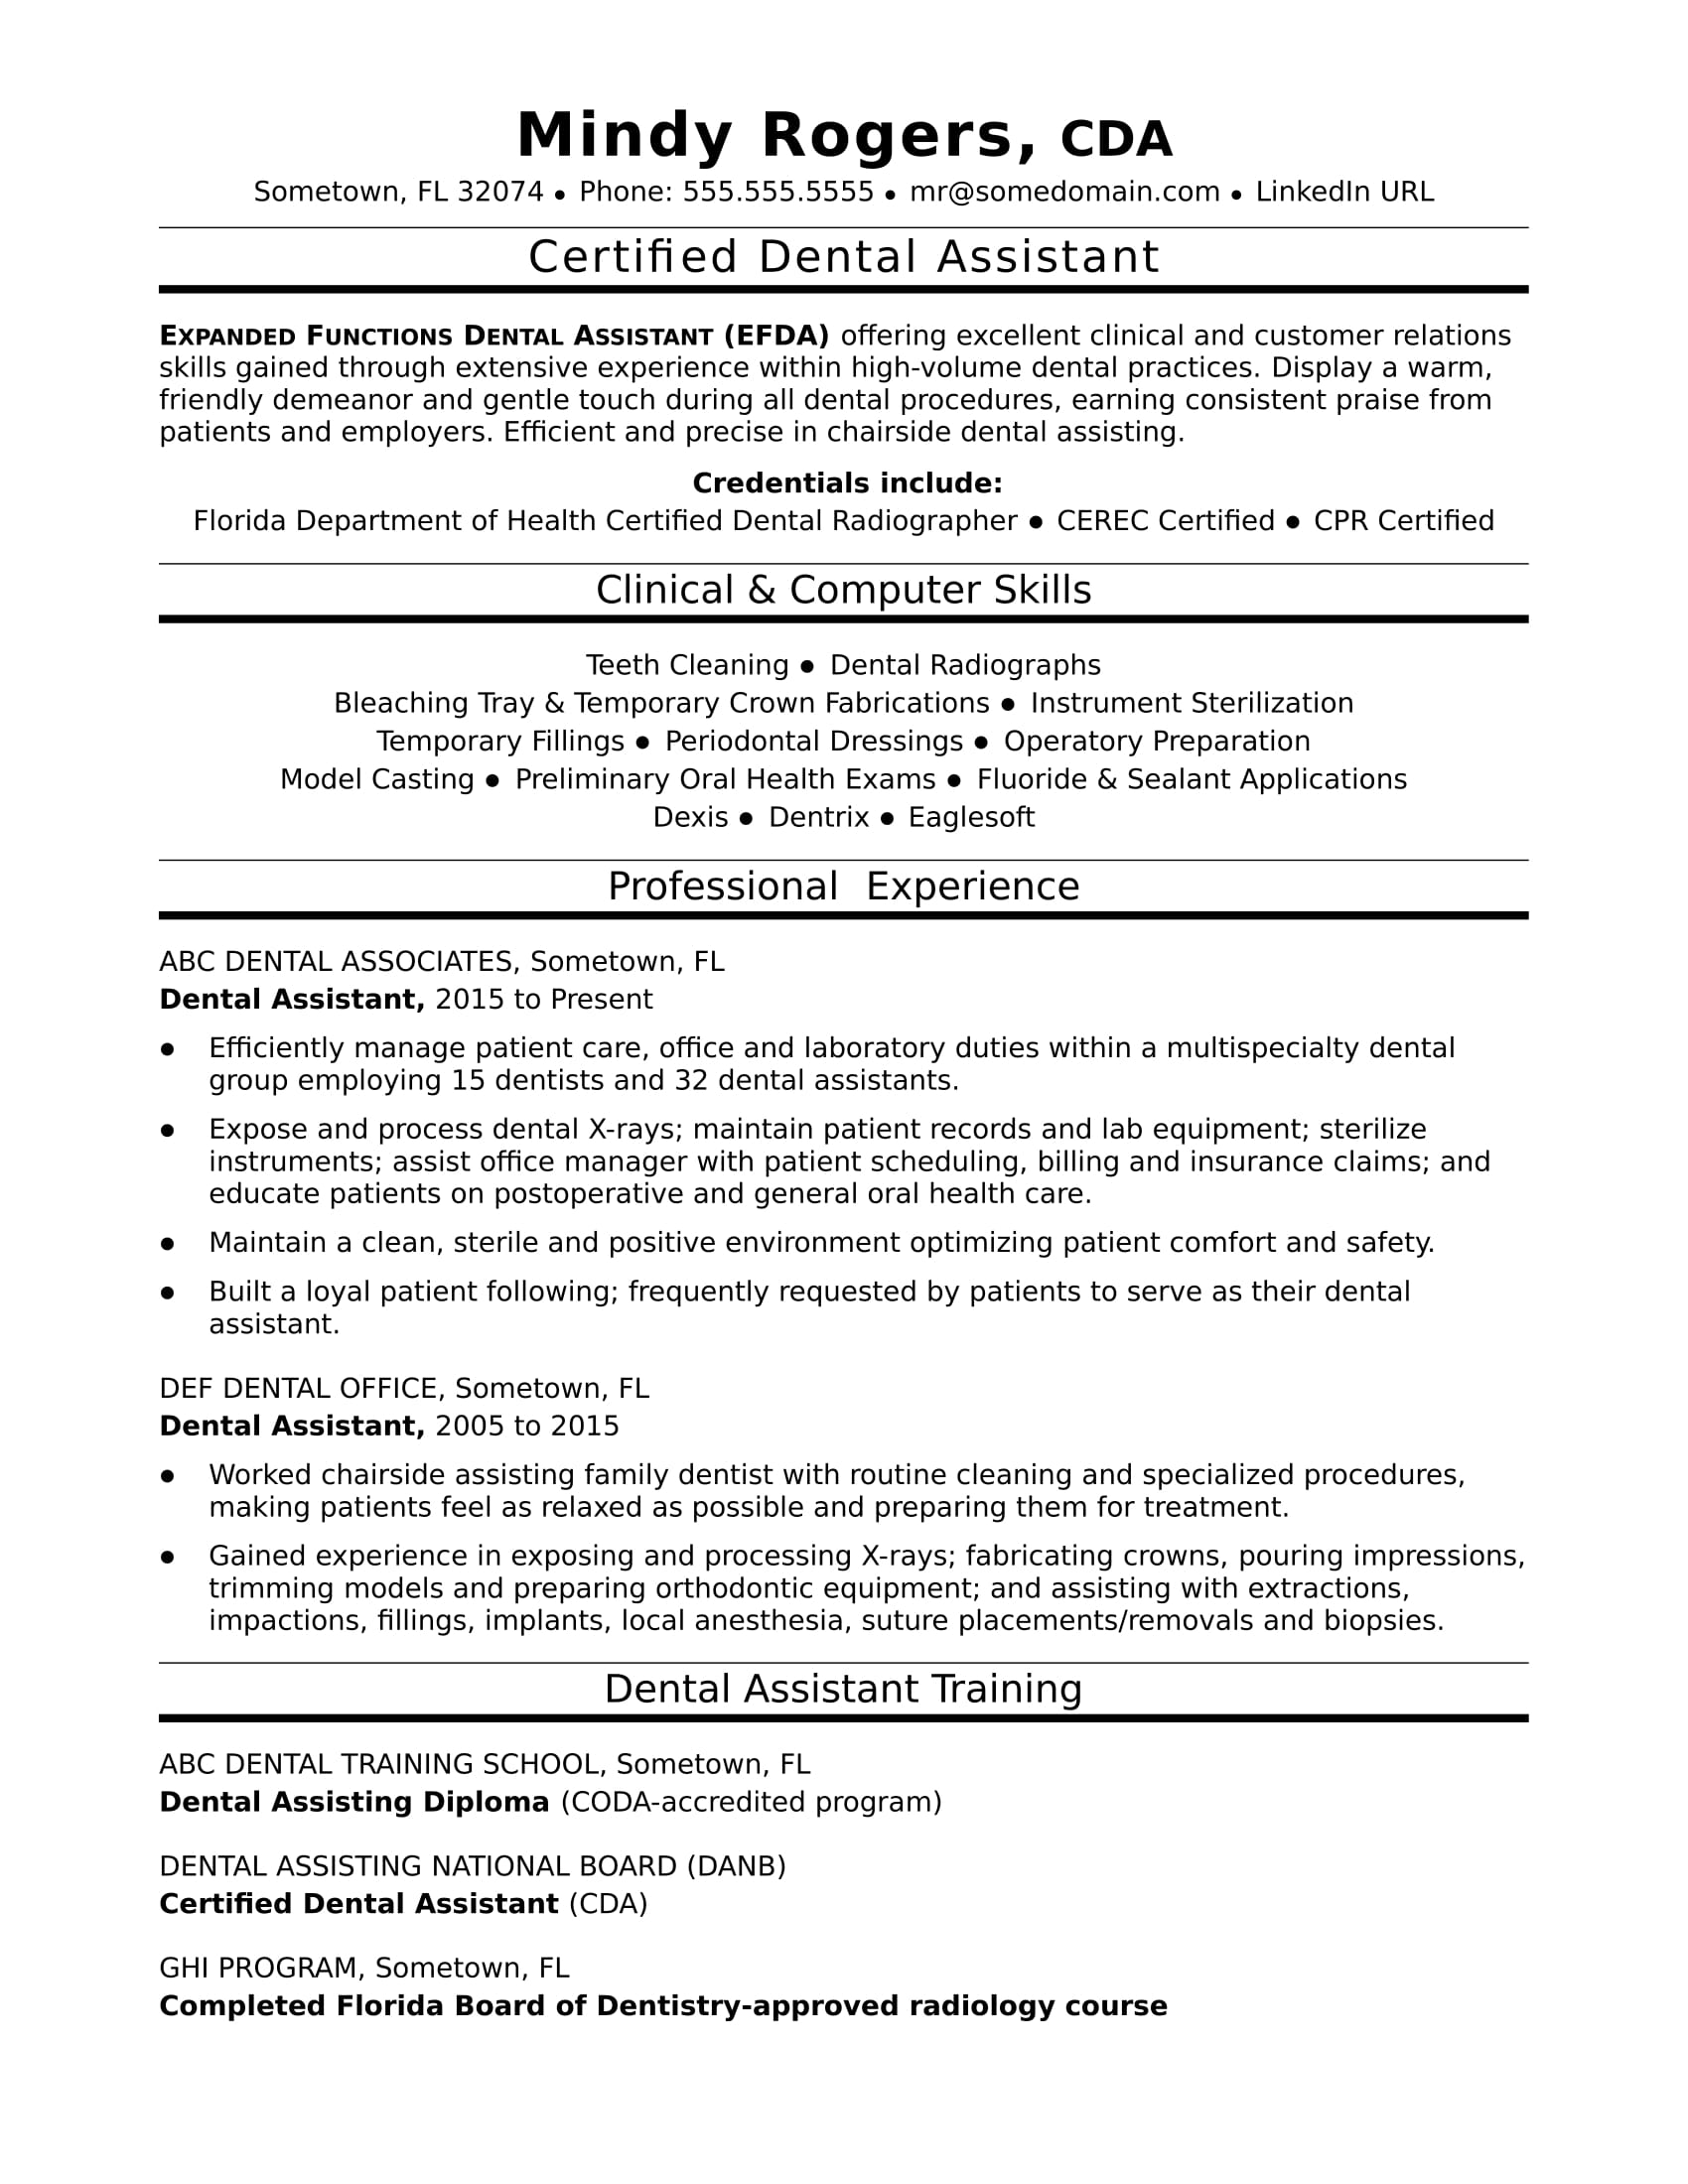 Dental Assistant Resume Sample | Monster.com